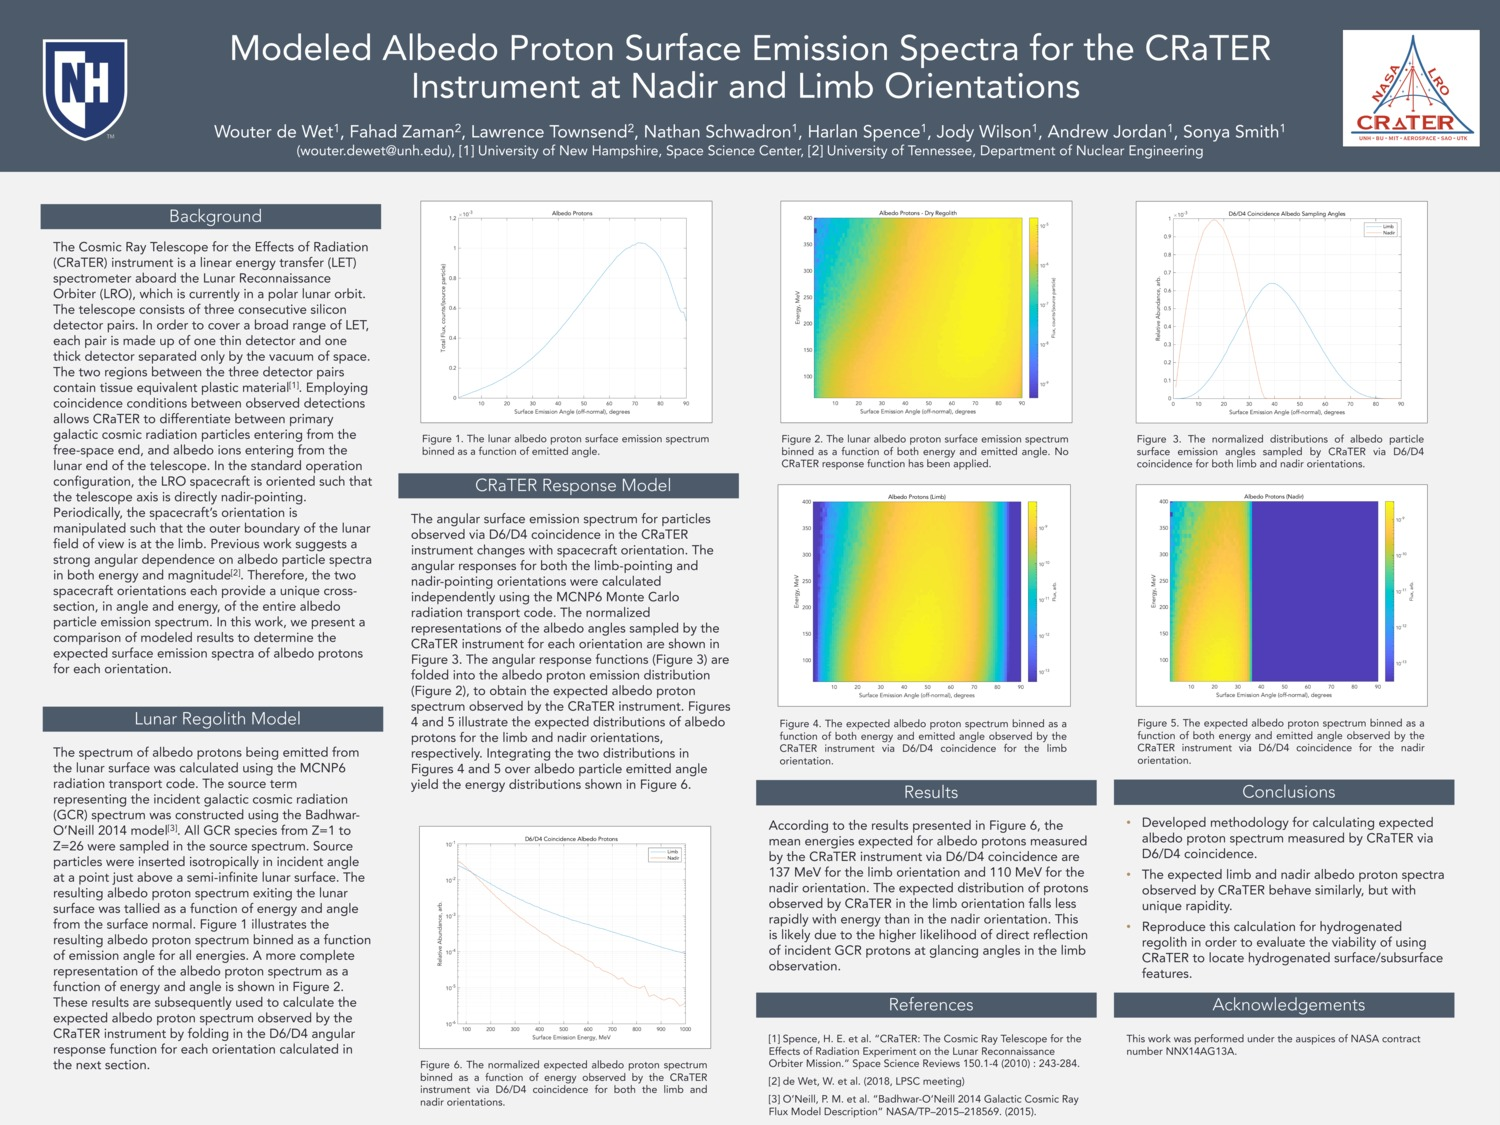 Modeled Albedo Proton Surface Emission Spectra For The Crater Instrument At Nadir And Limb Orientations by wouterdewet